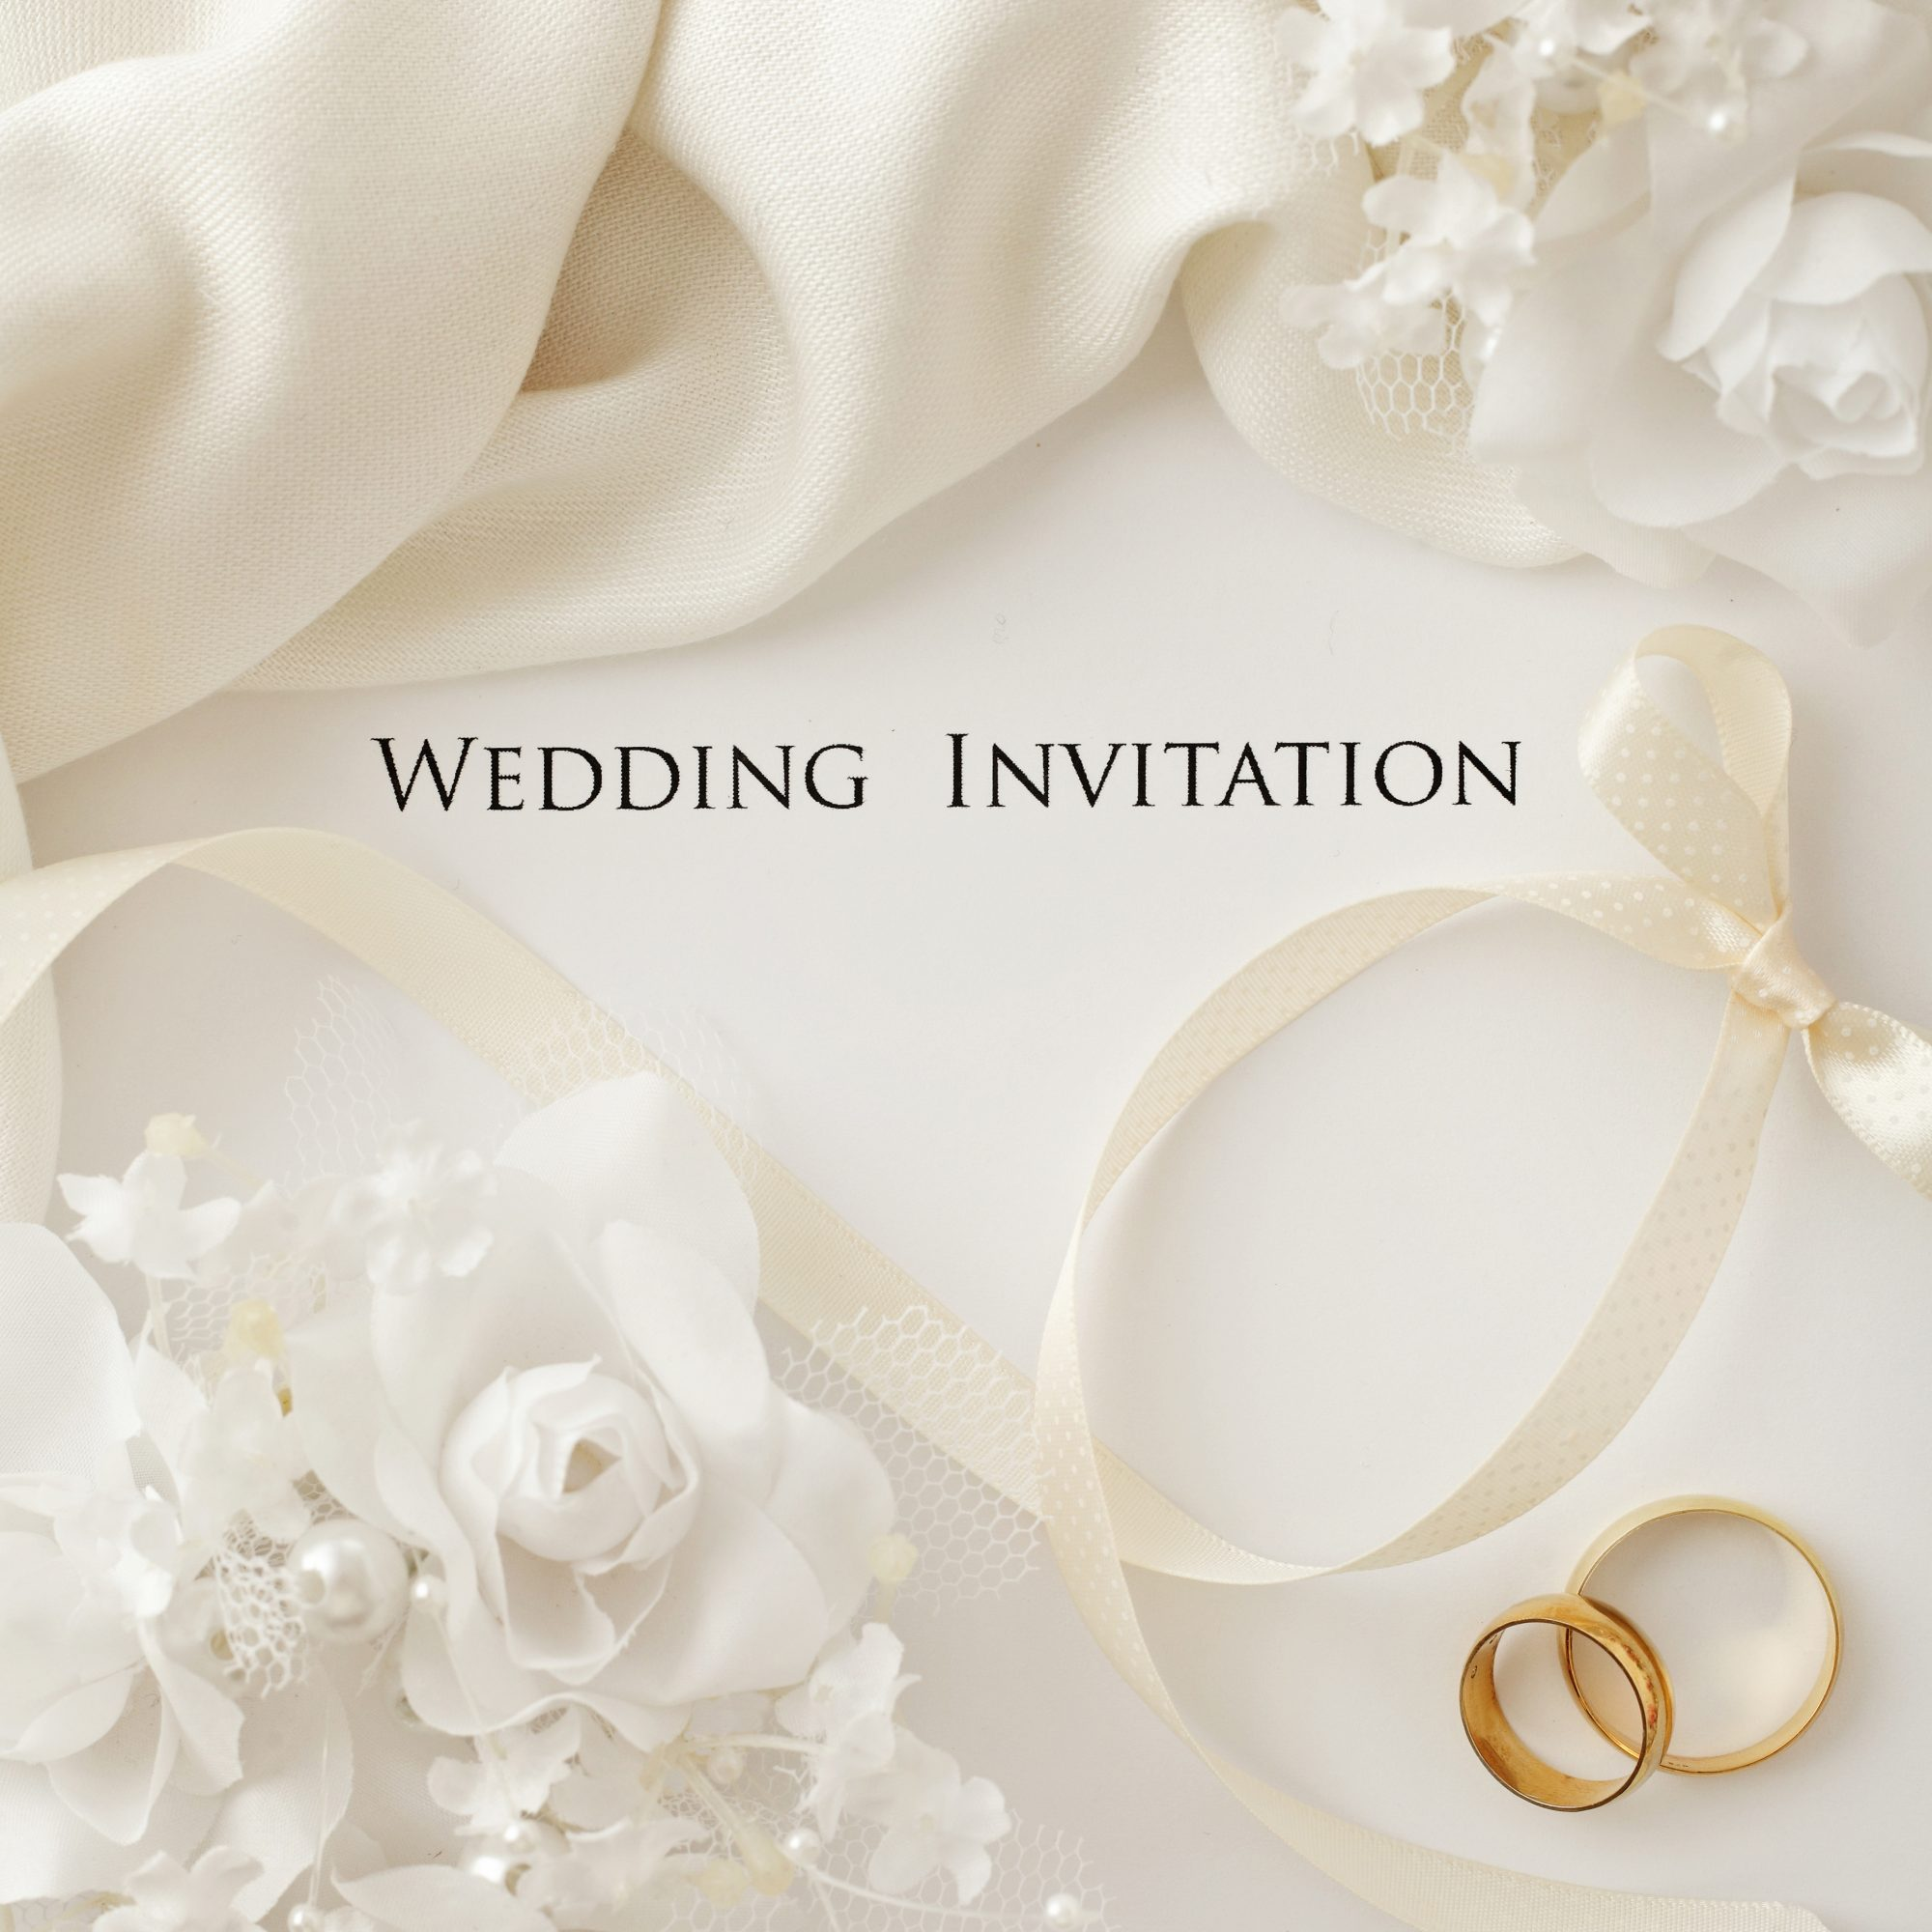 Boardmans Gift Registry Weddings: Wedding Invitation Etiquette: Can I Include My Gift